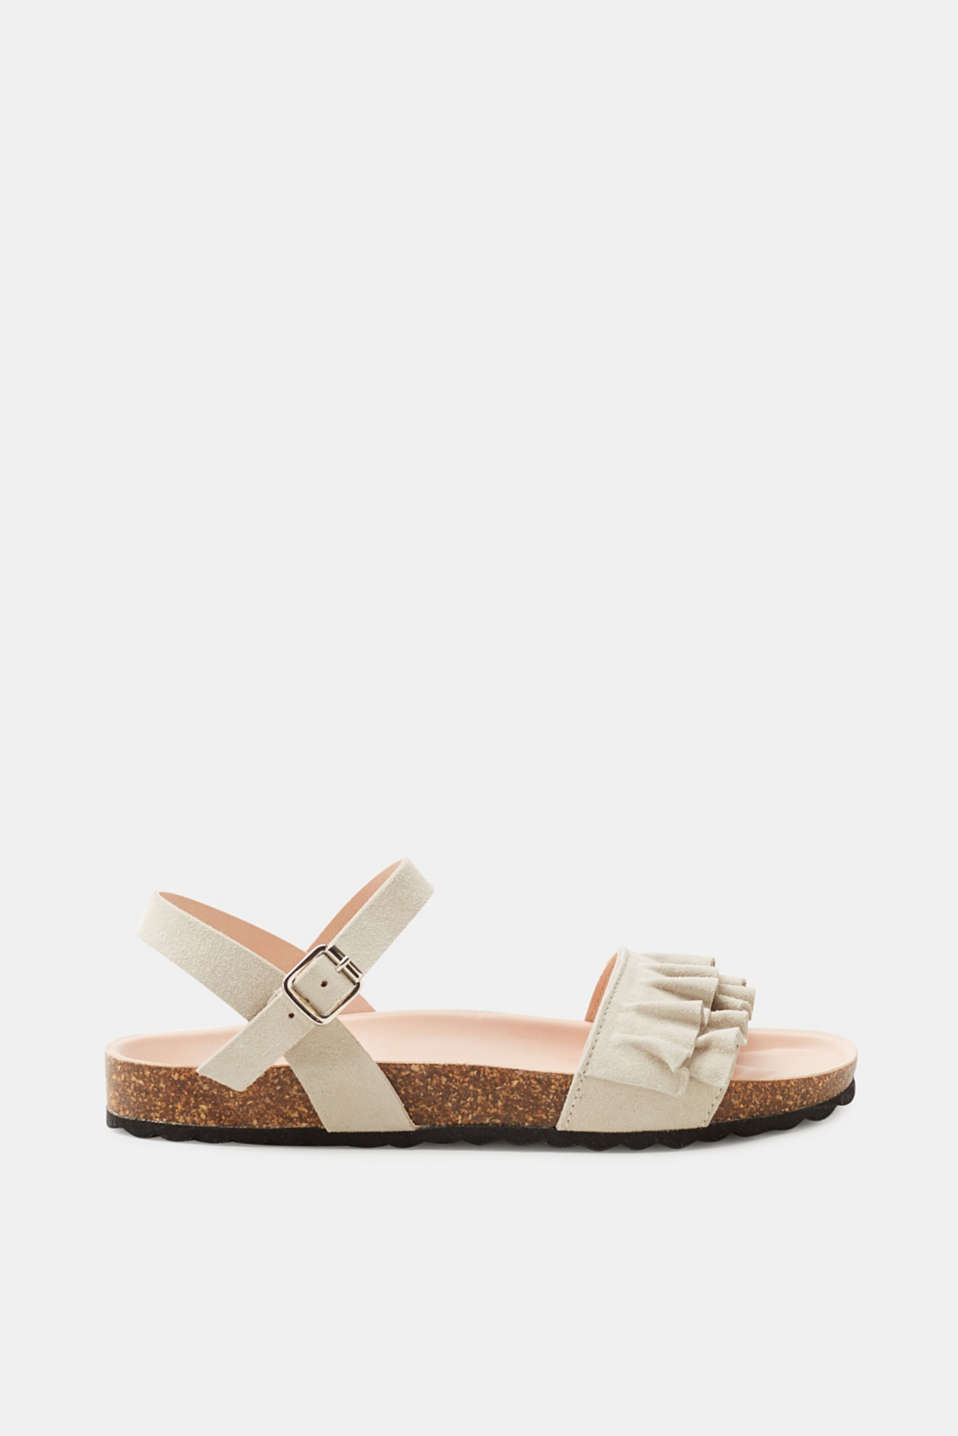 Esprit - Leather sandals with a footbed and feminine frills